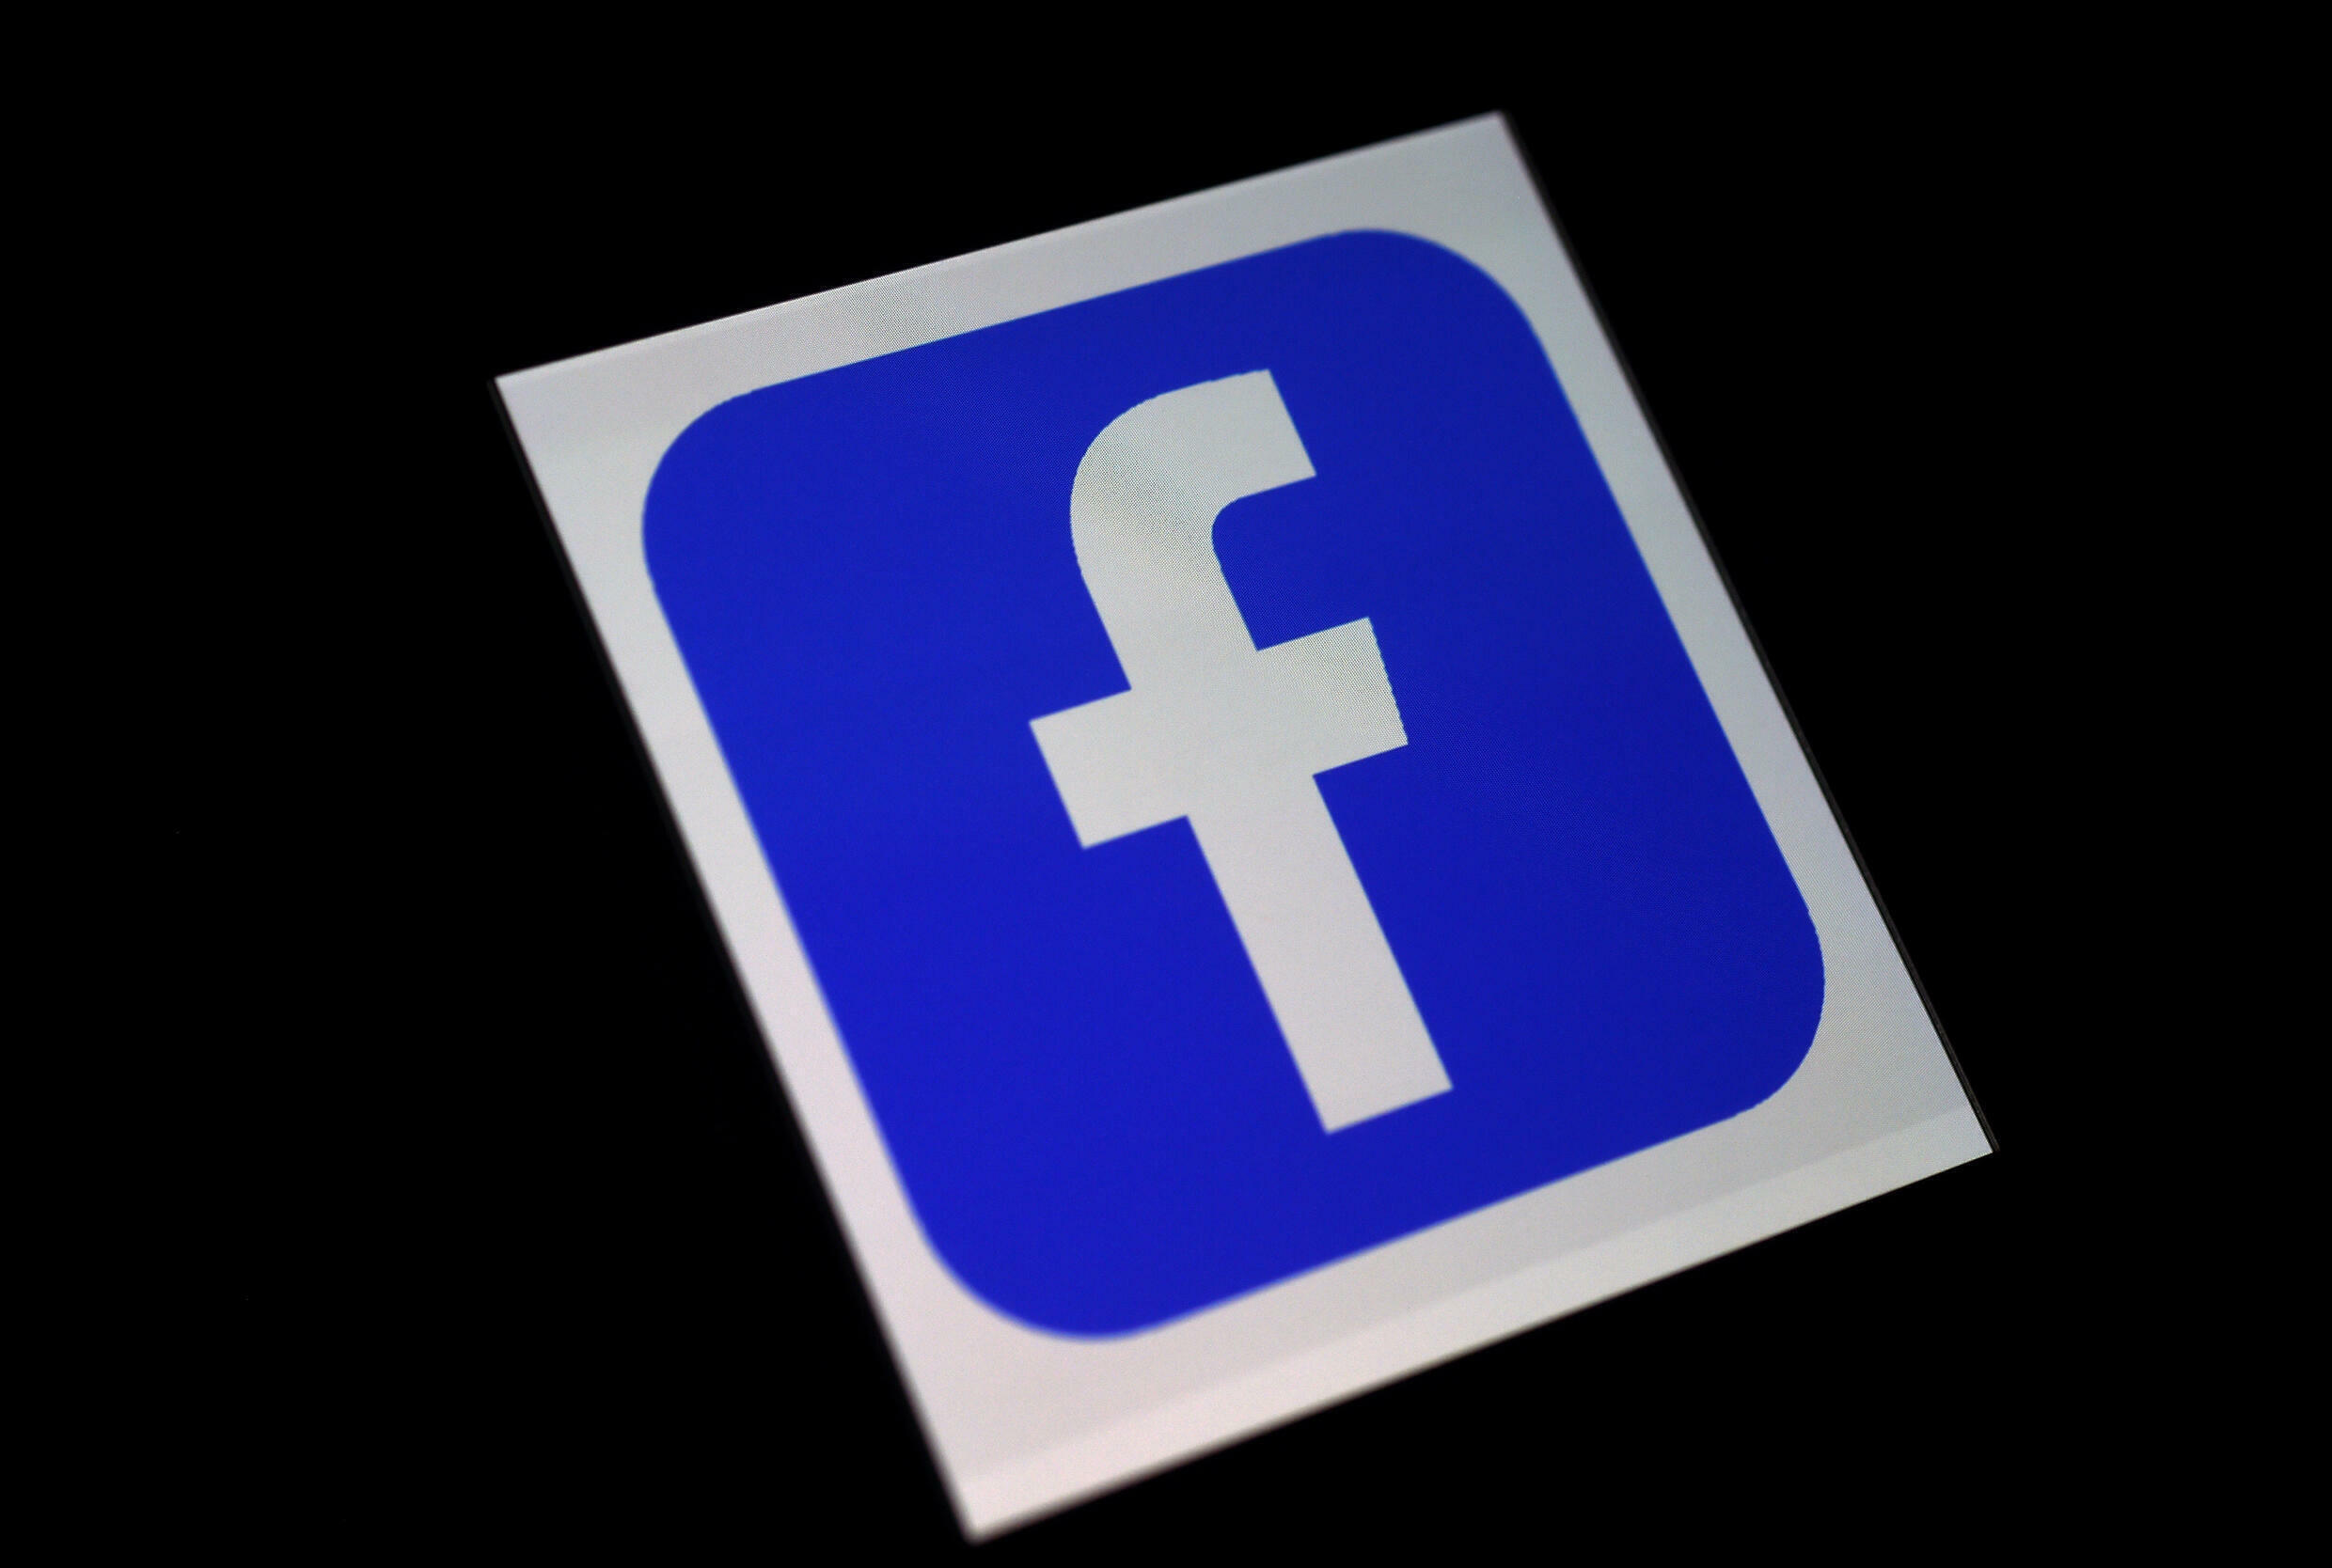 Facebook and Australia have traded barbs over a proposed law that would force the social media giant to pay for content